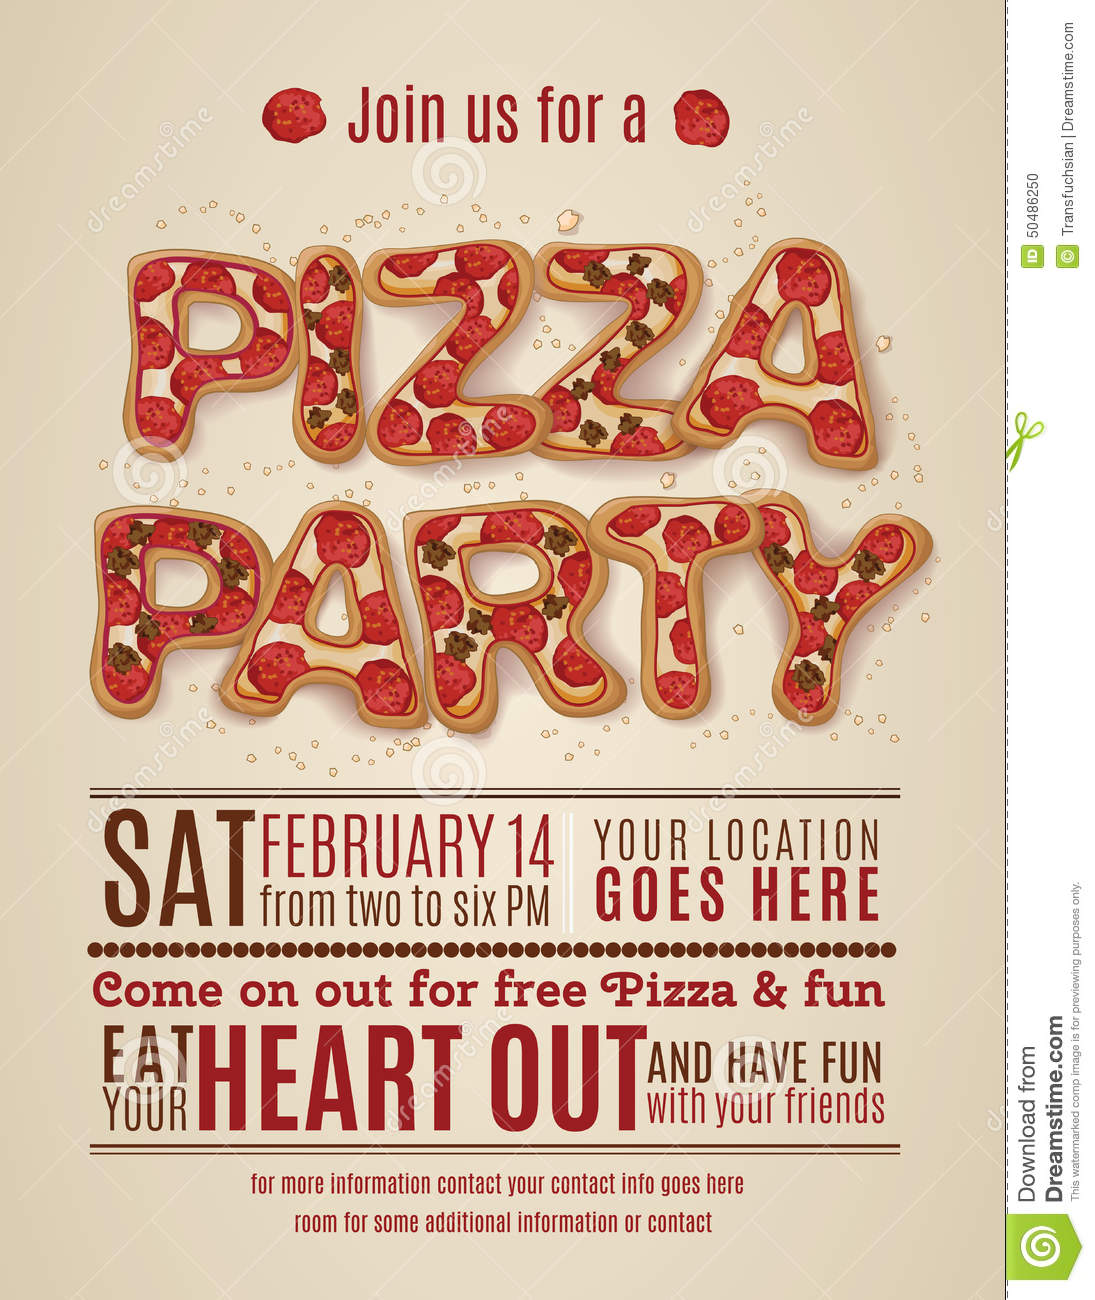 Pizza Party Invitation Template Stock Vector - Image: 50486250